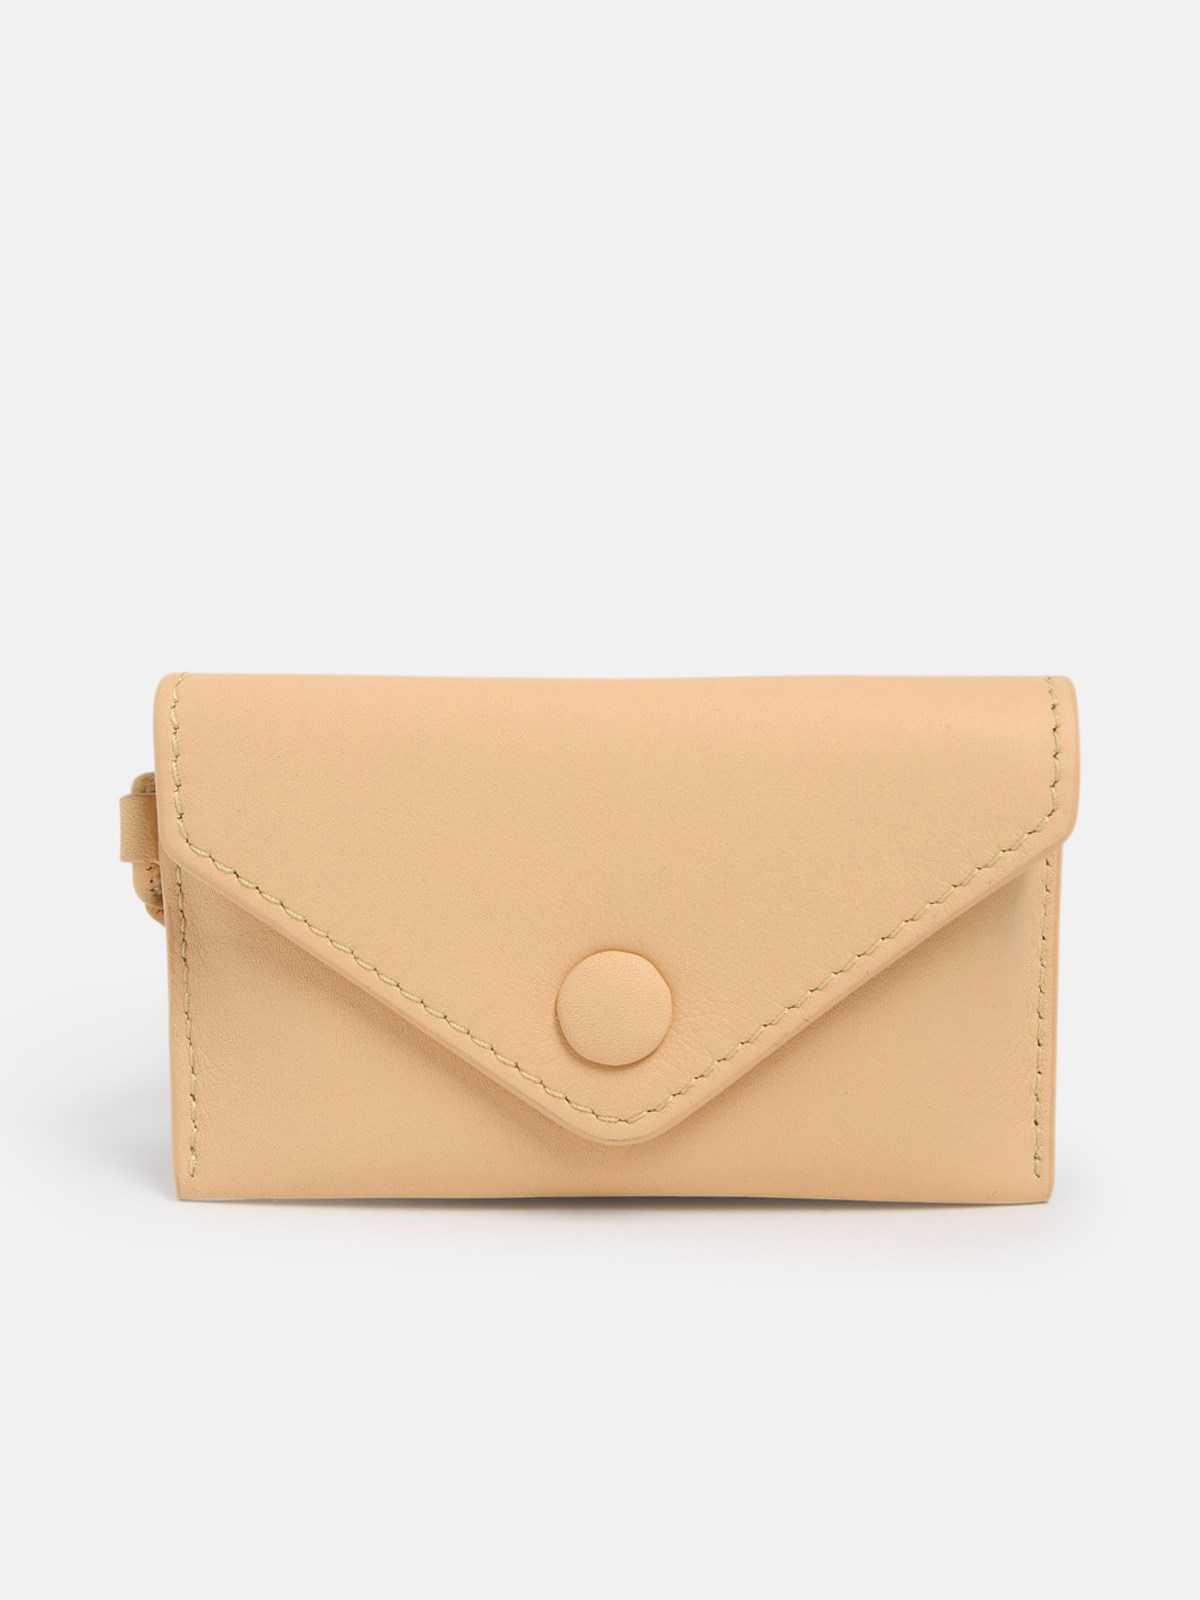 Max Mara Bags BEIGE DULA CARD HOLDER